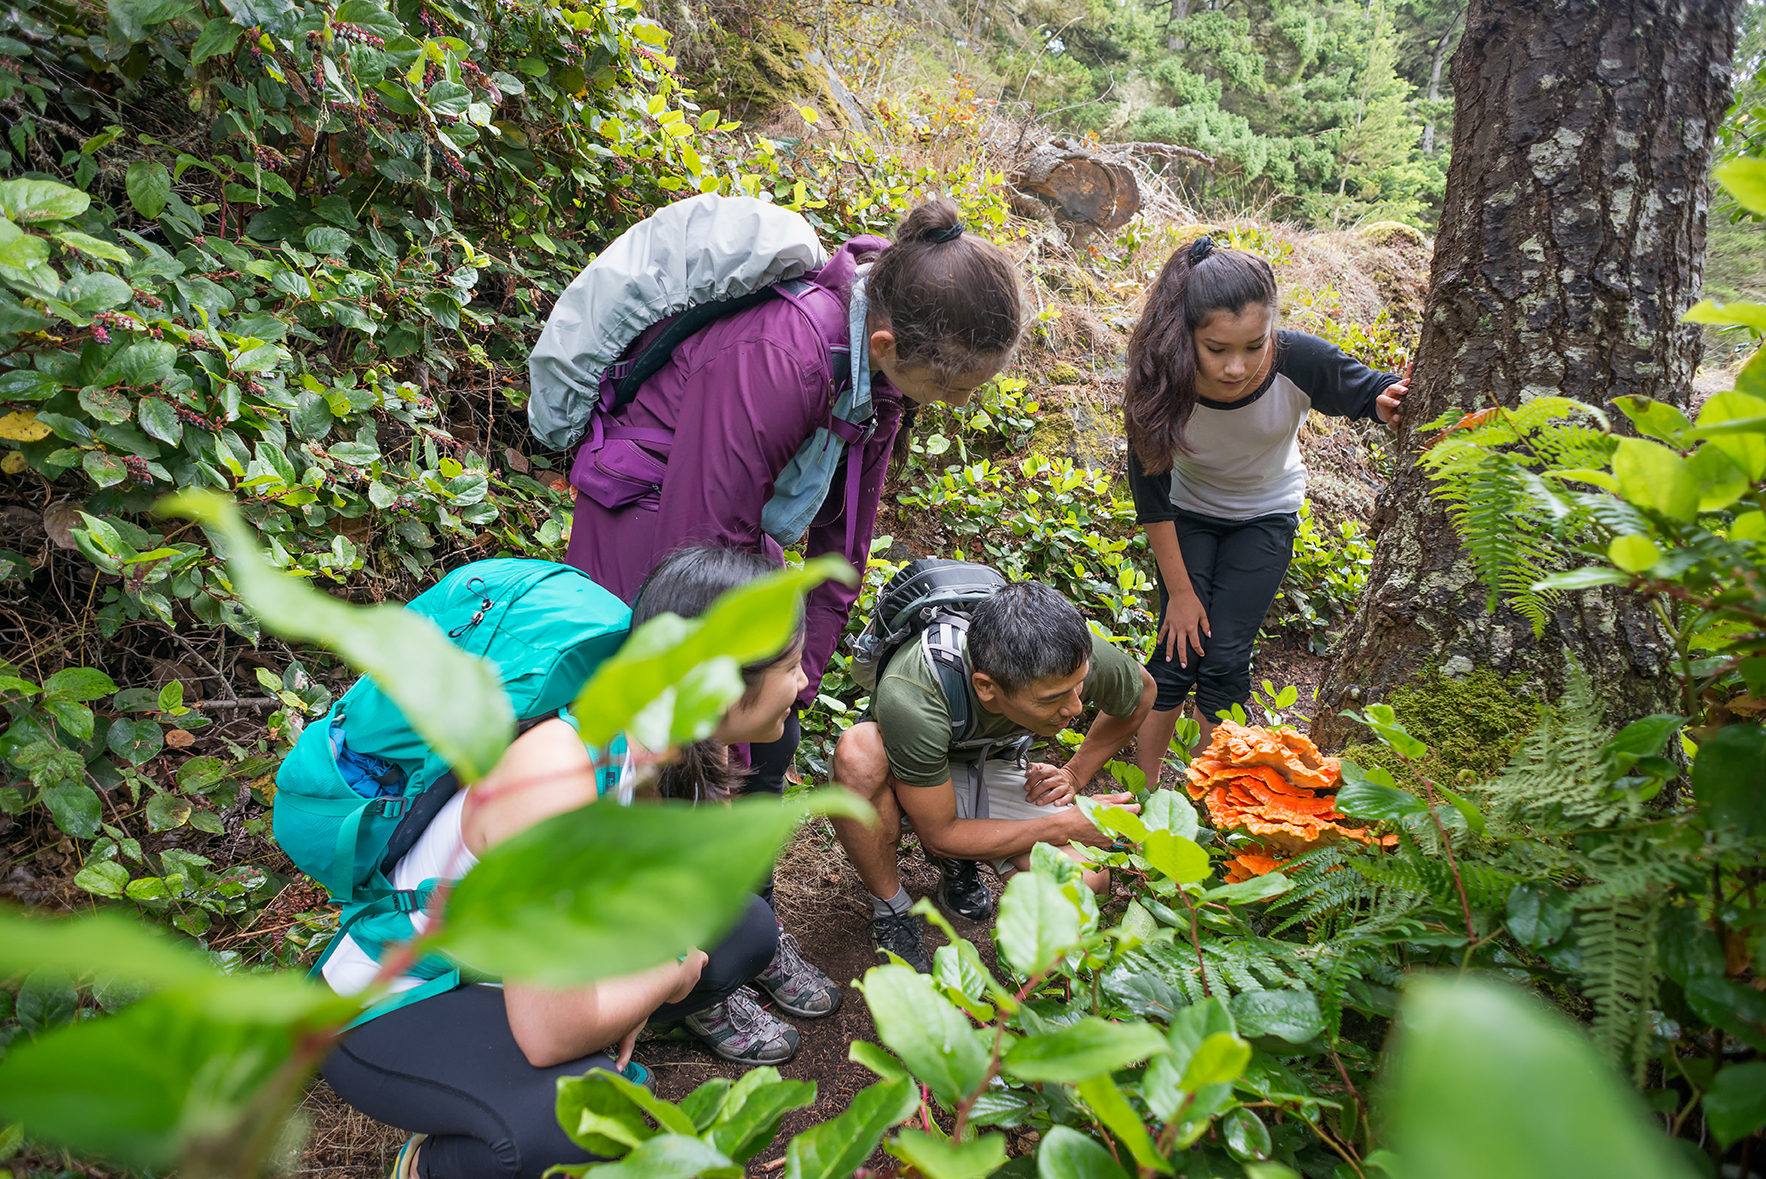 Backpackers Examine an Edible Orange Mushroom while Hiking Through Forest